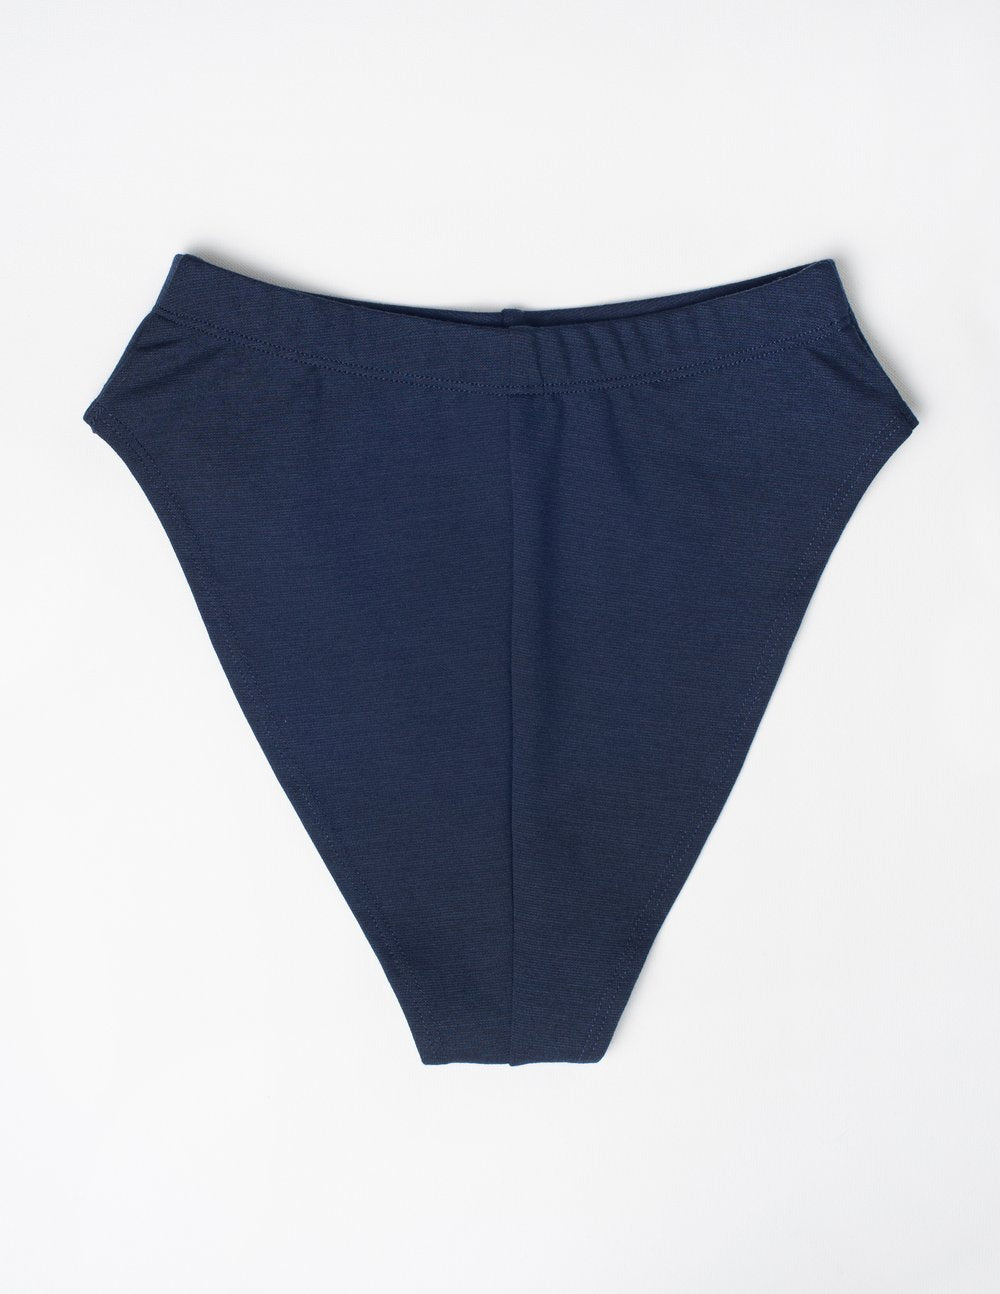 July Undies - SHOPNECESSARY6.0